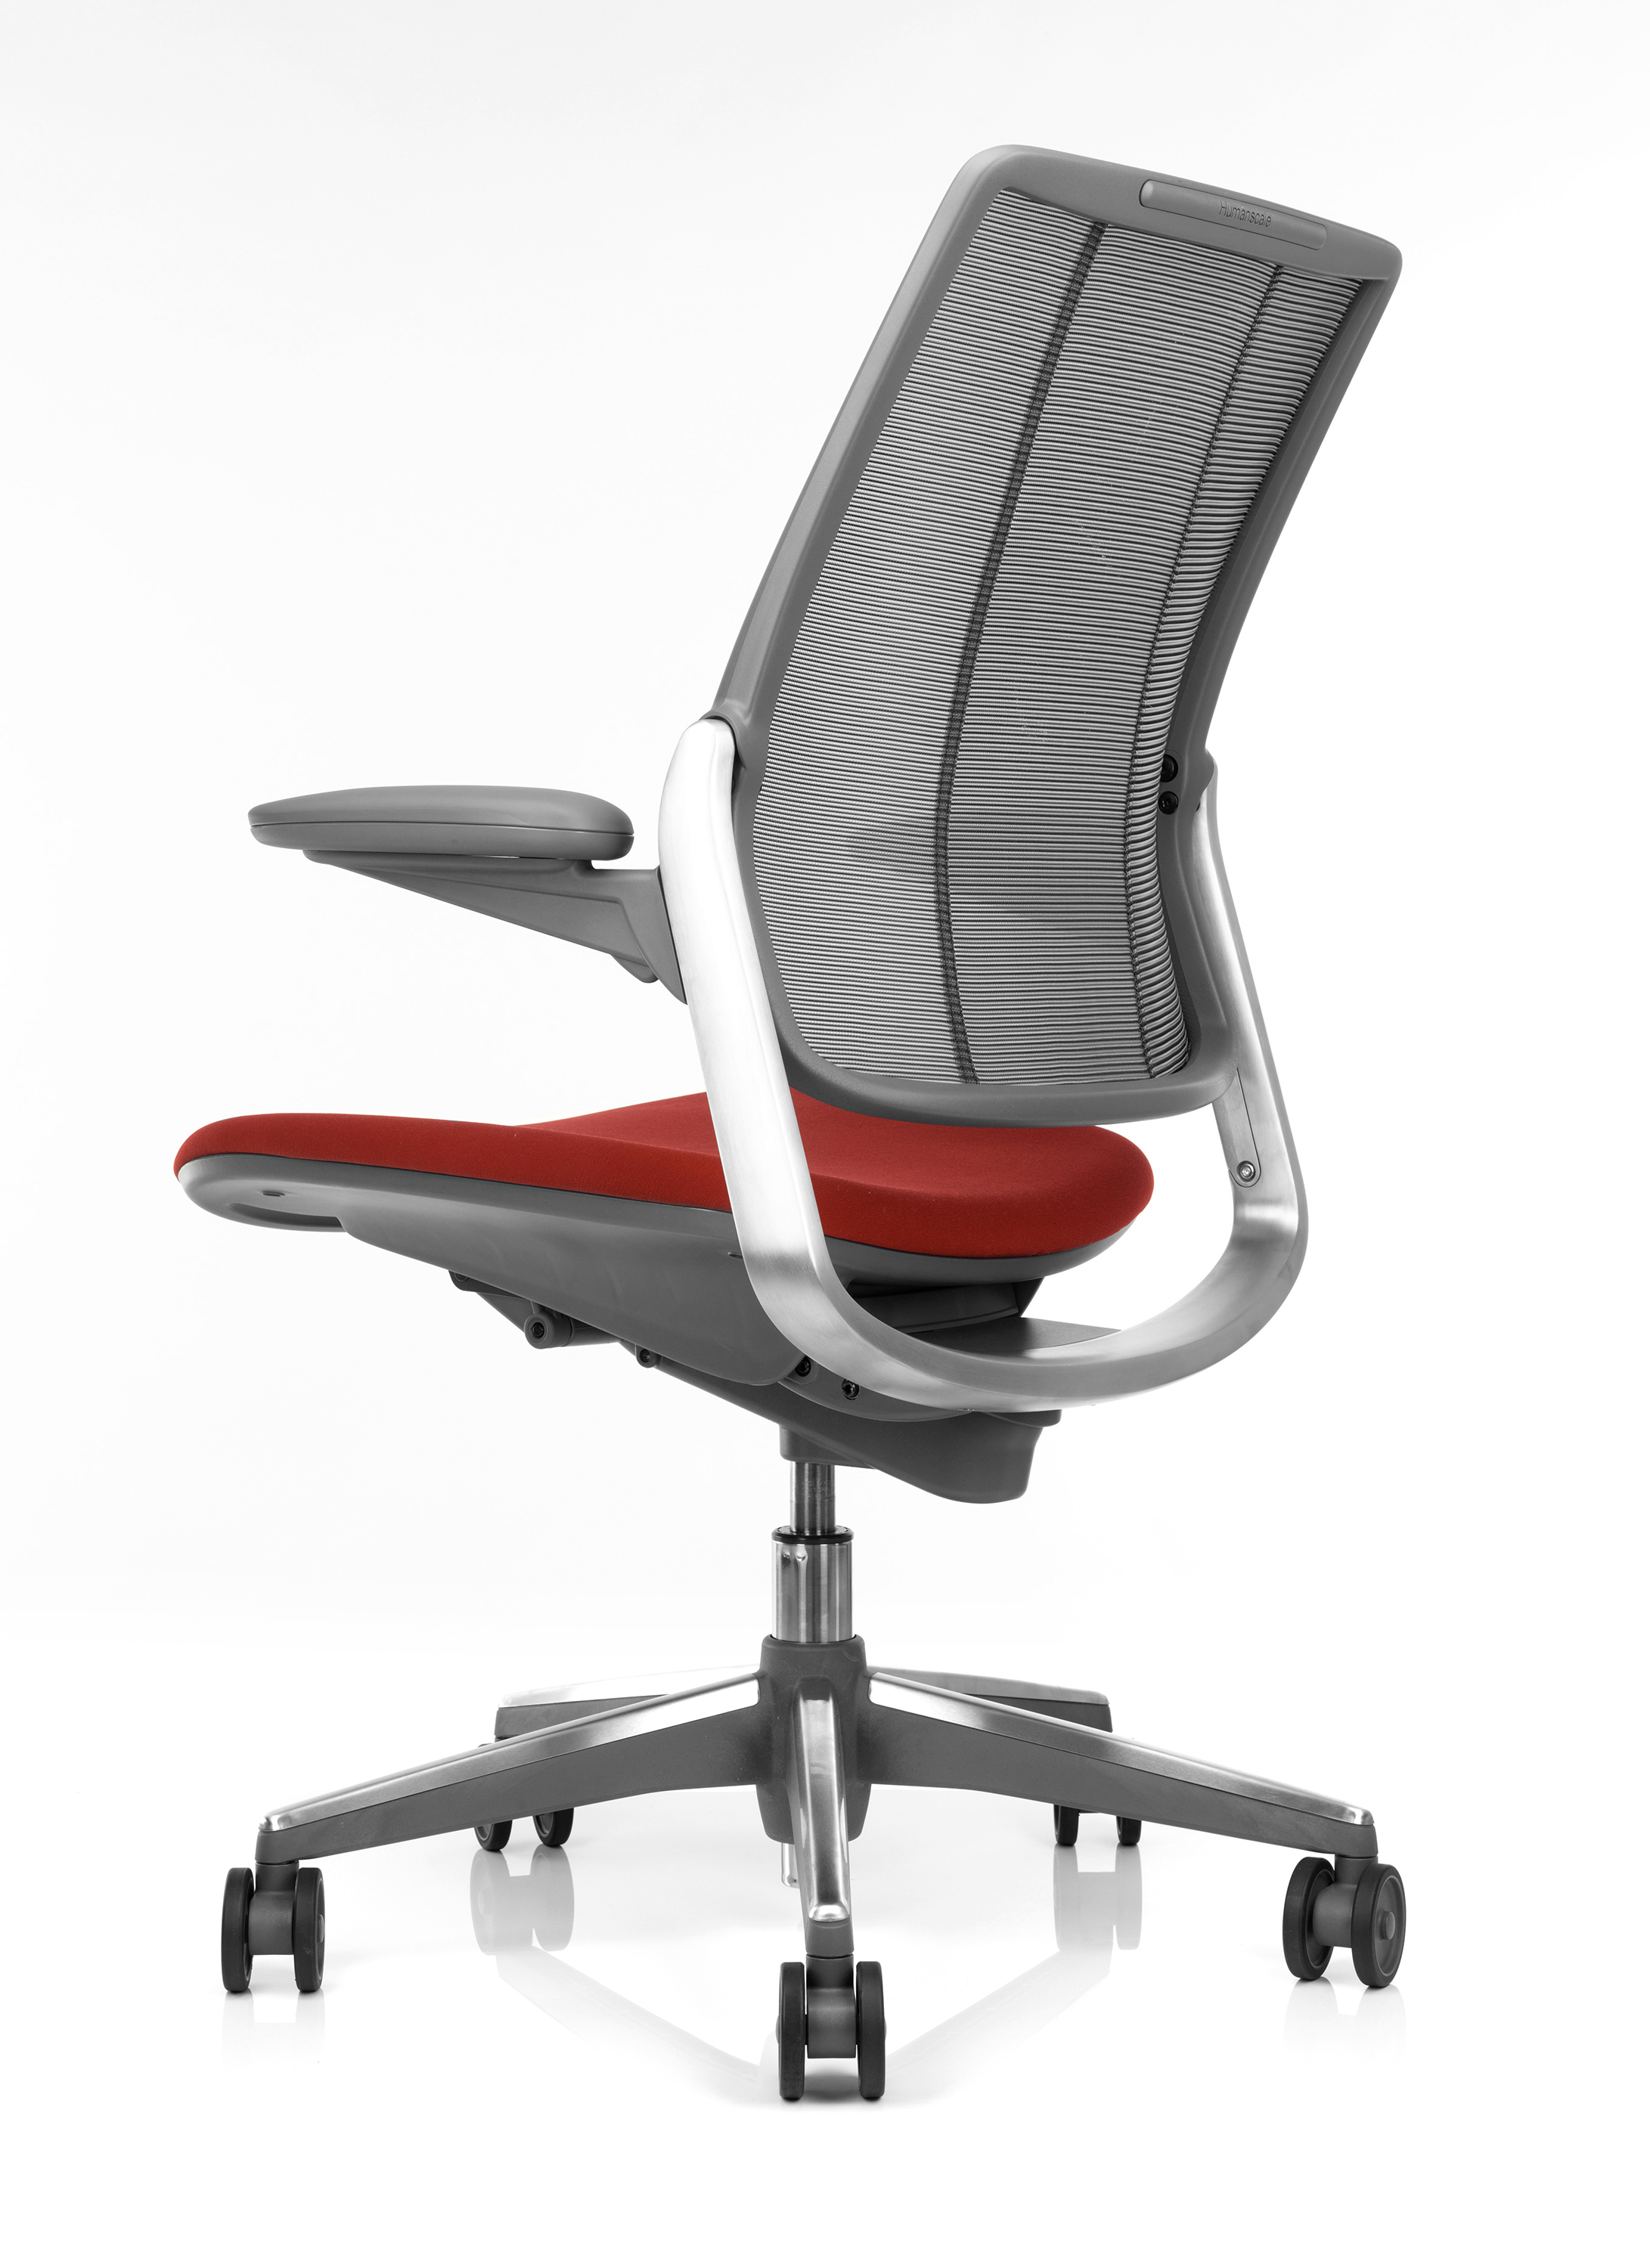 Diffrient Smart Chair Humanscale s newest office seating solution